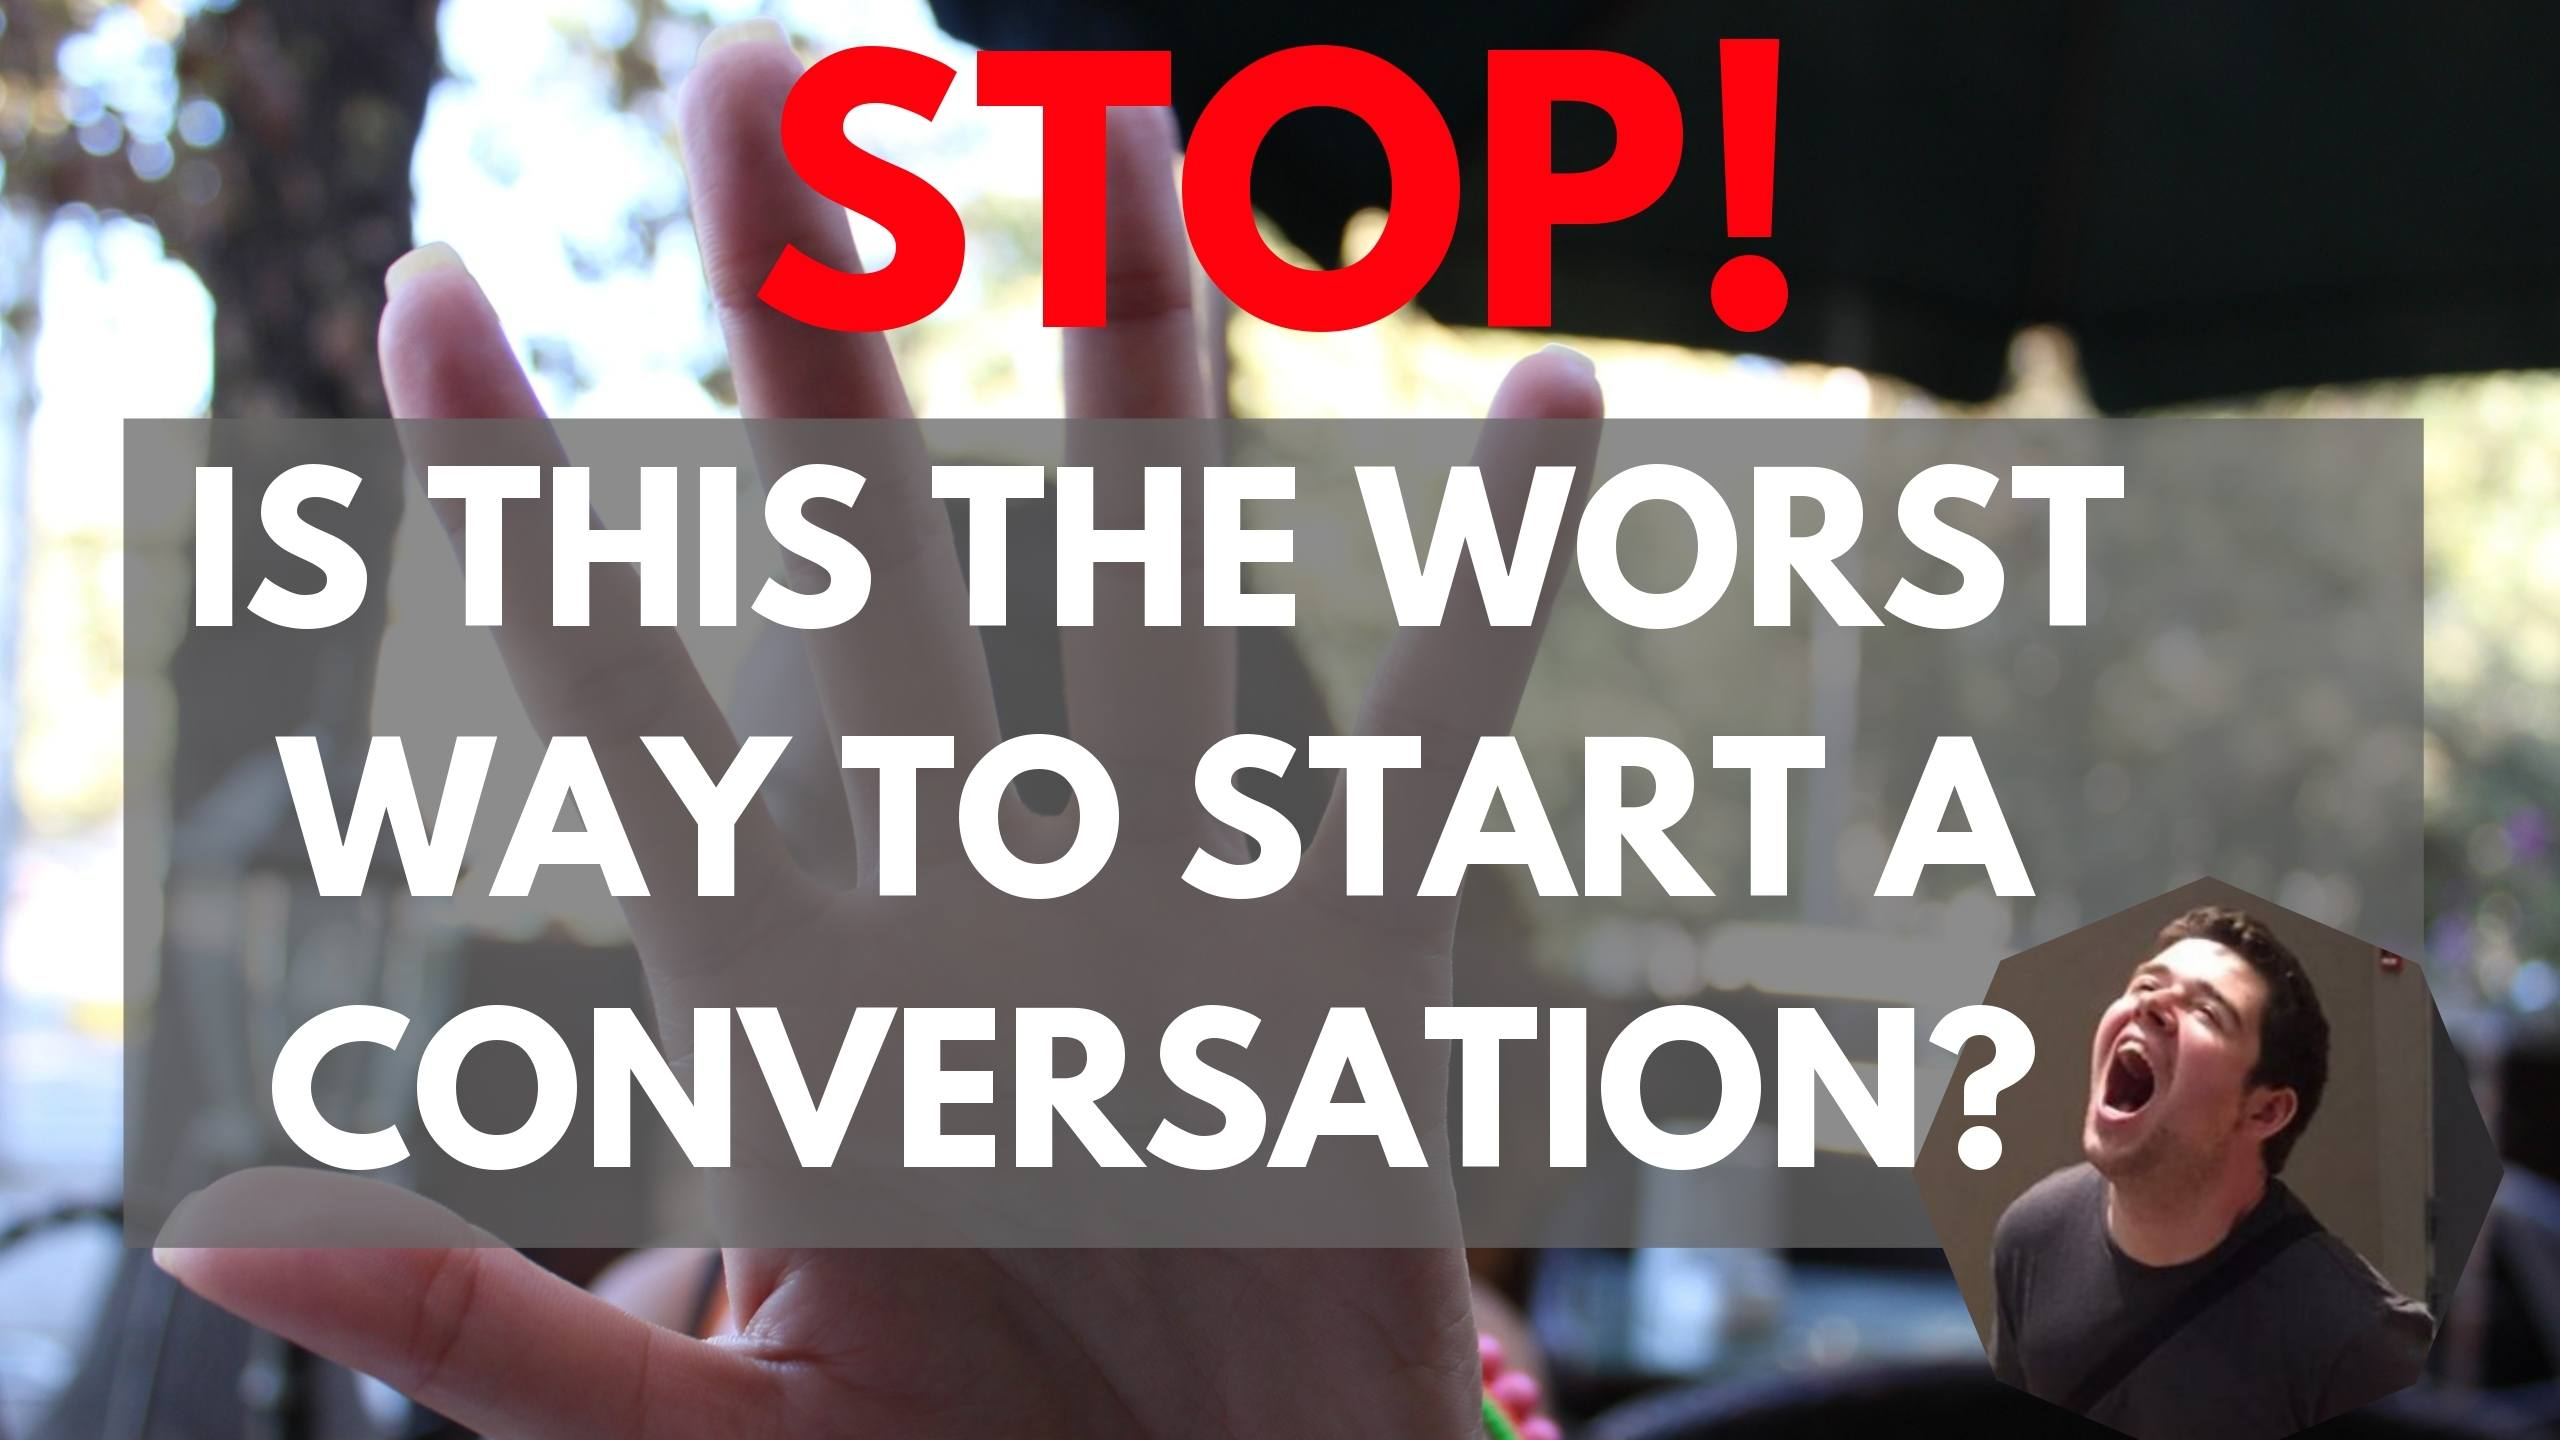 how to start conversation on phone in english